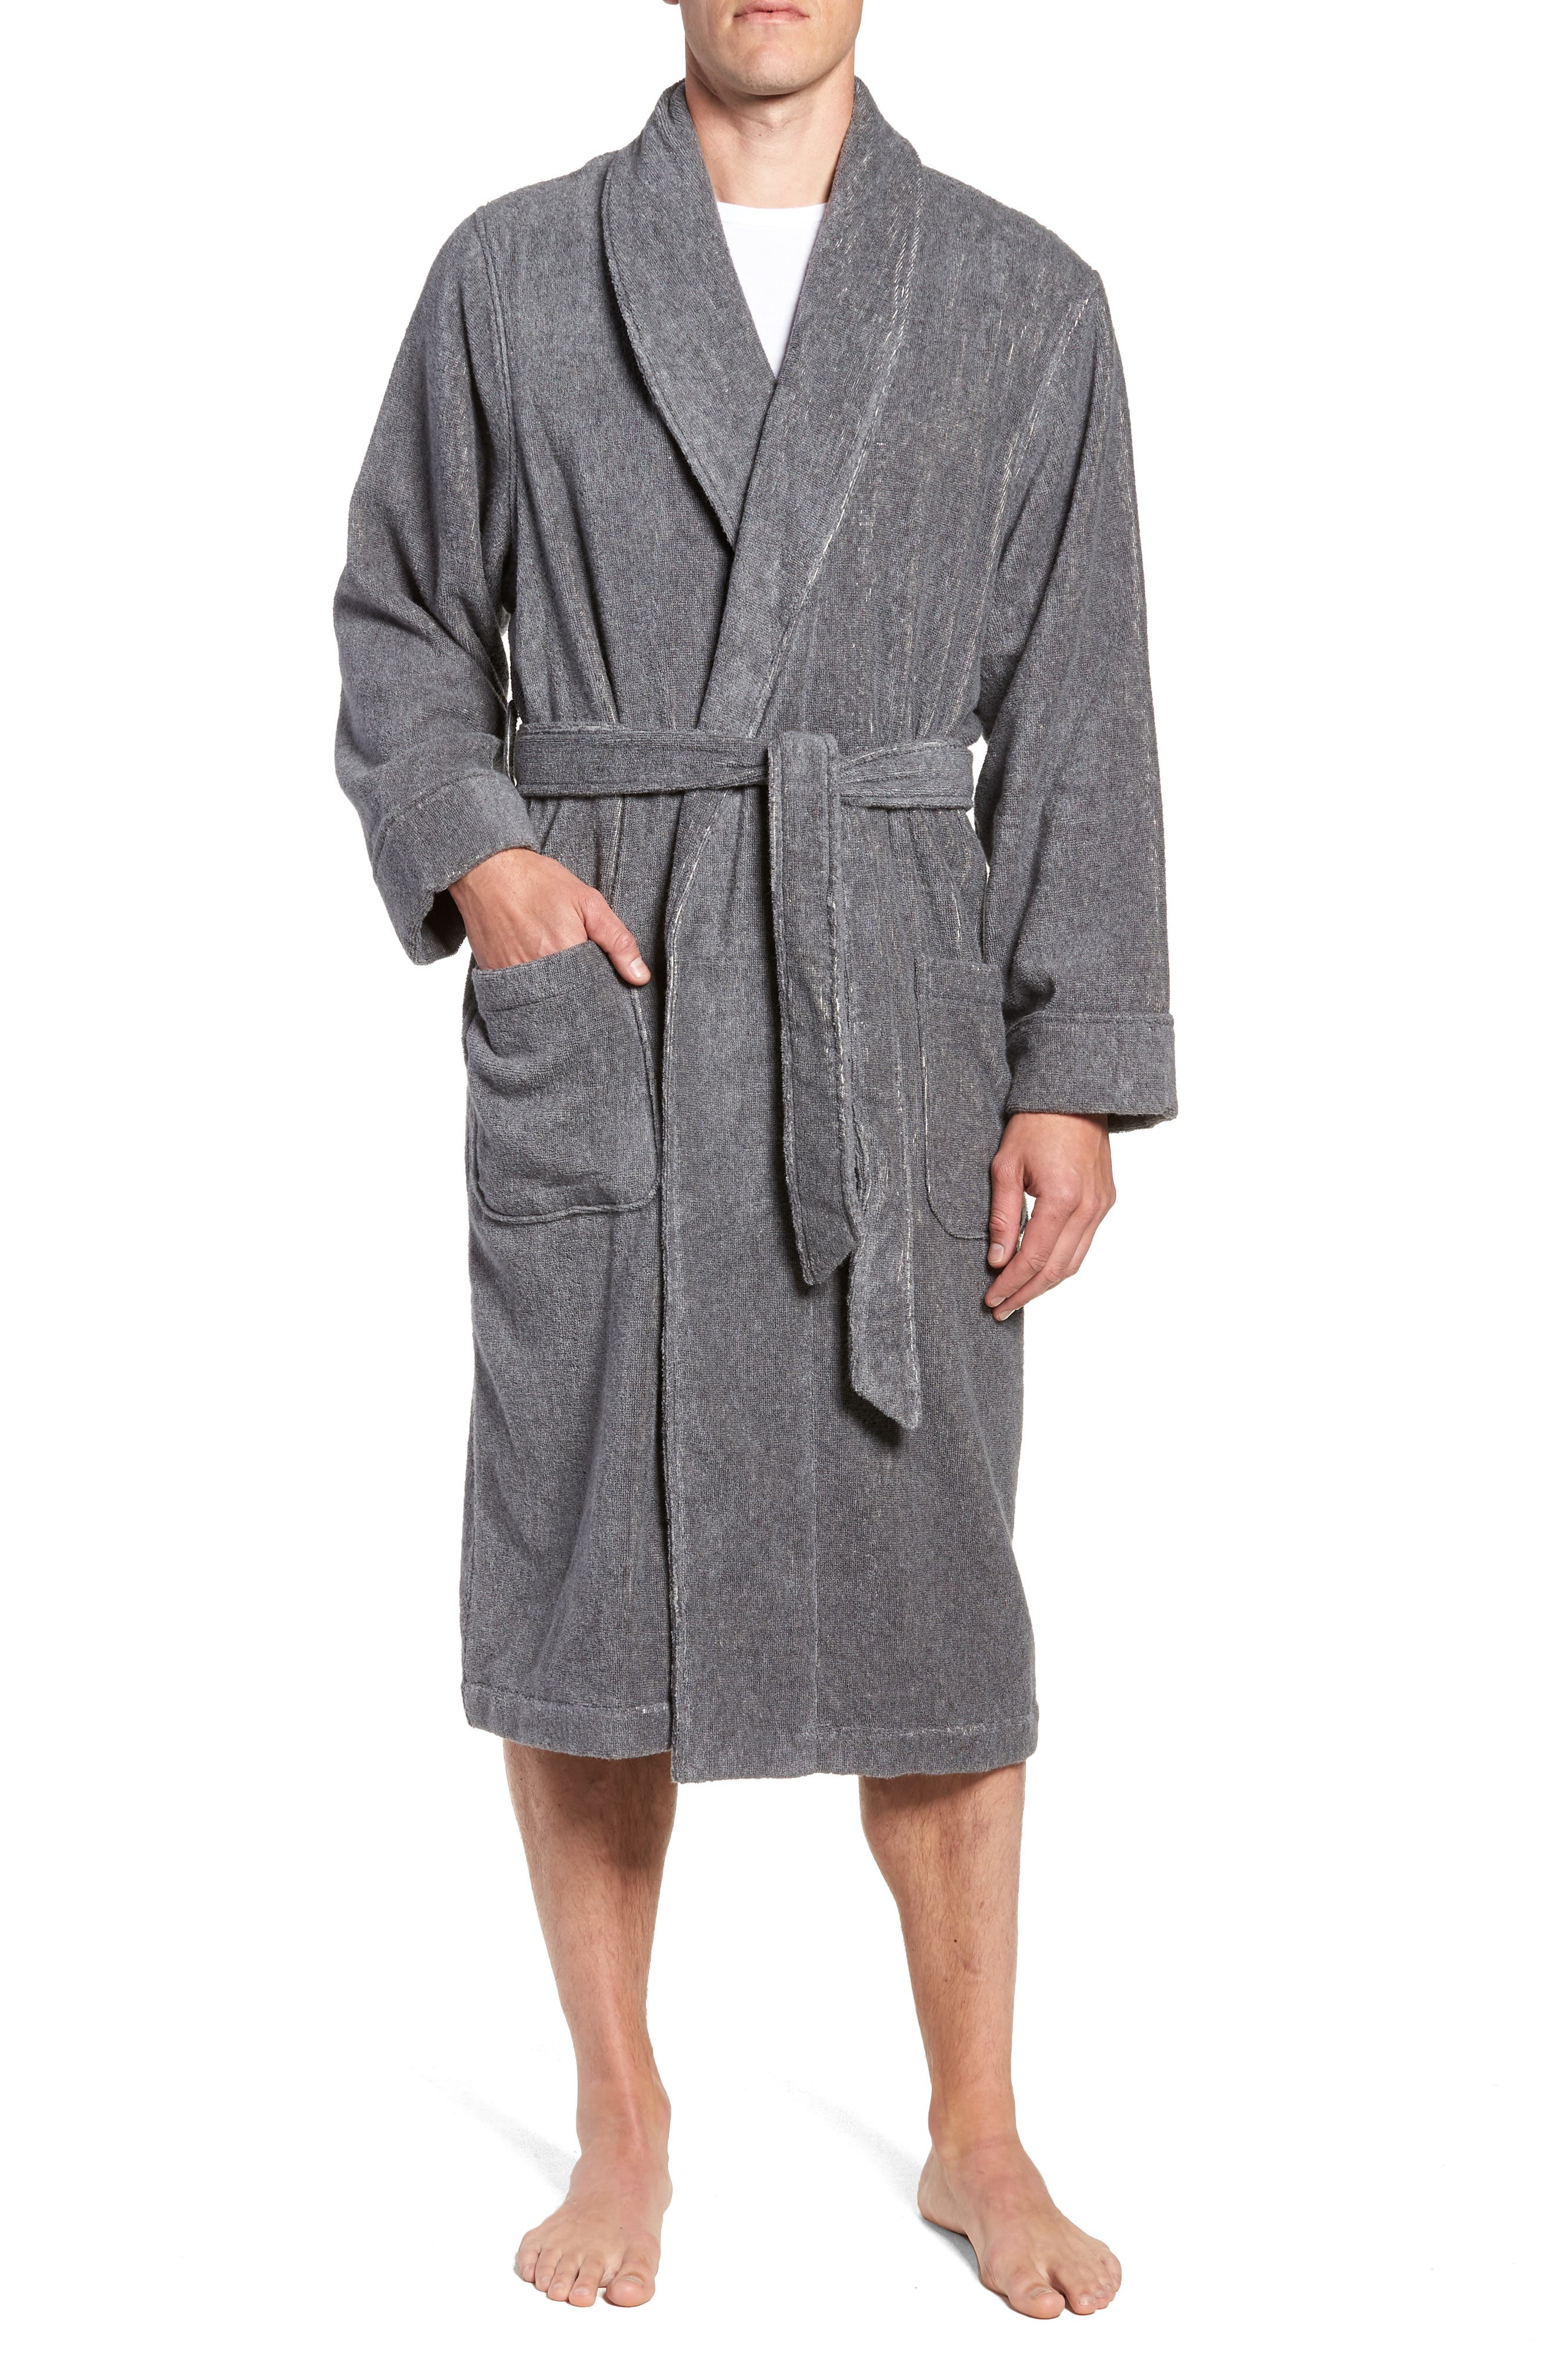 Hydro Cotton Terry Robe,                             Main thumbnail 1, color,                             Charcoal Heather